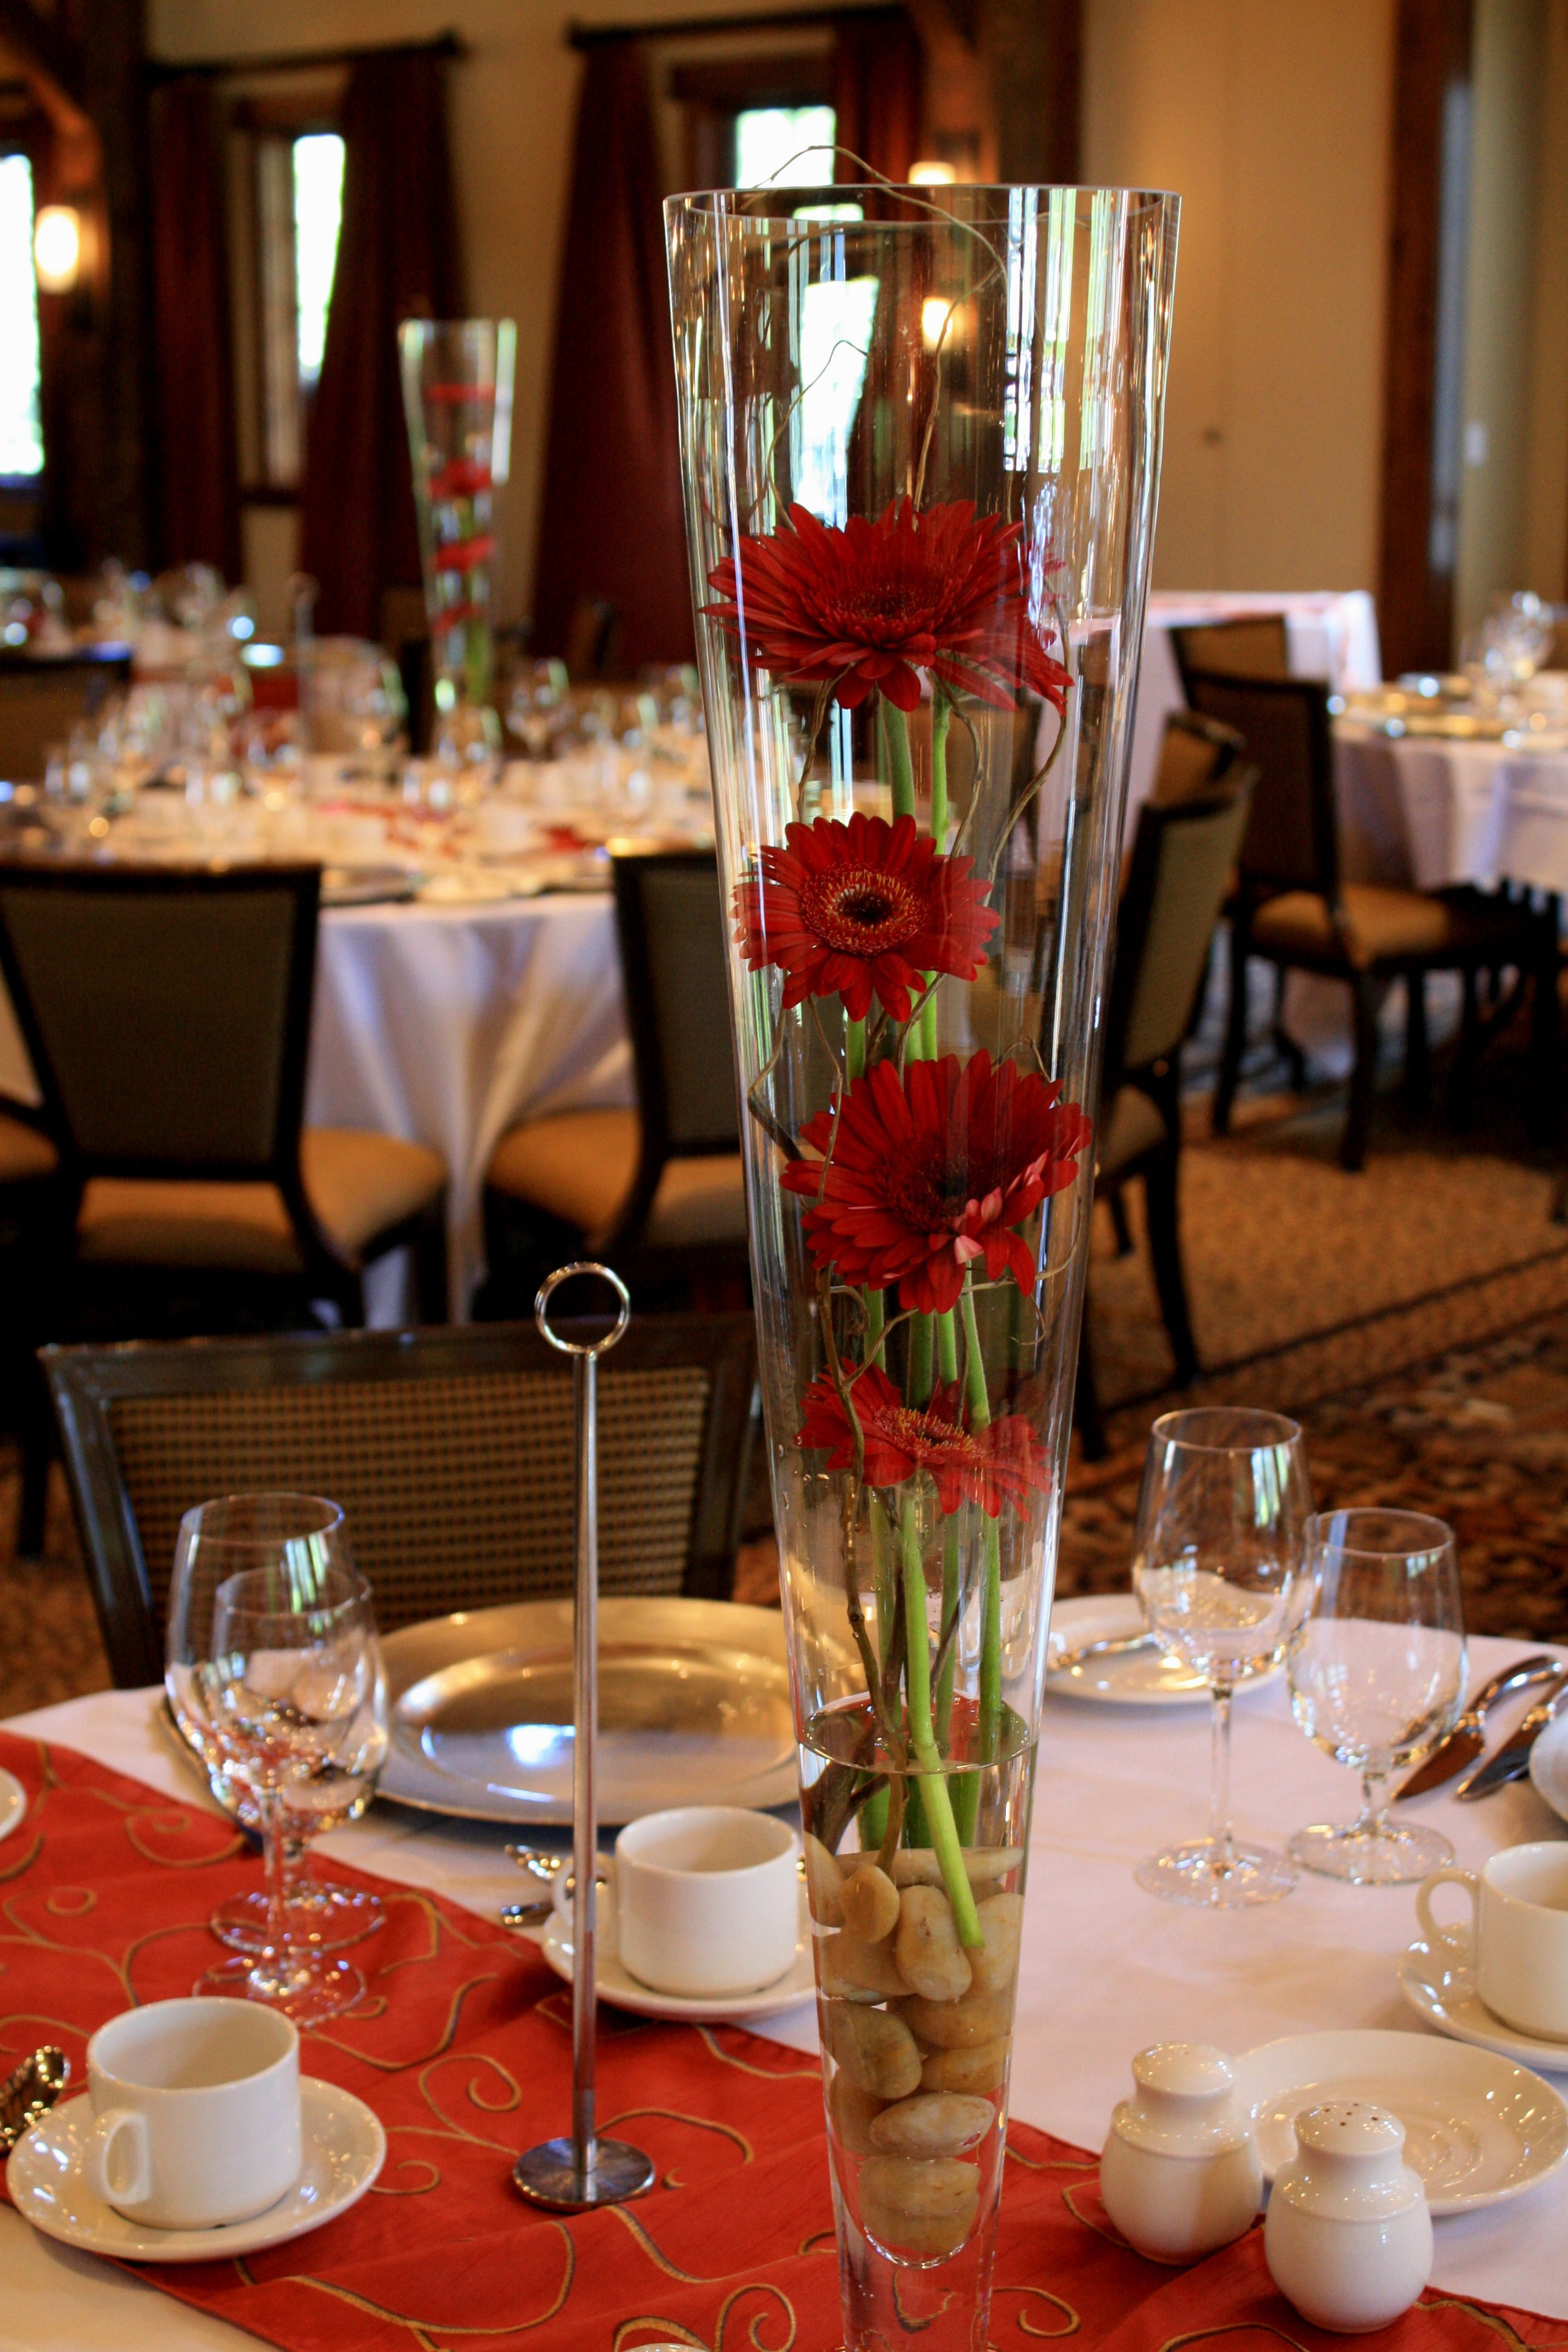 tall unique vases of decorating ideas for tall vases awesome h vases giant floor vase i for decorating ideas for tall vases new decoration ideas sweet dining room using cylinder extra tall vase